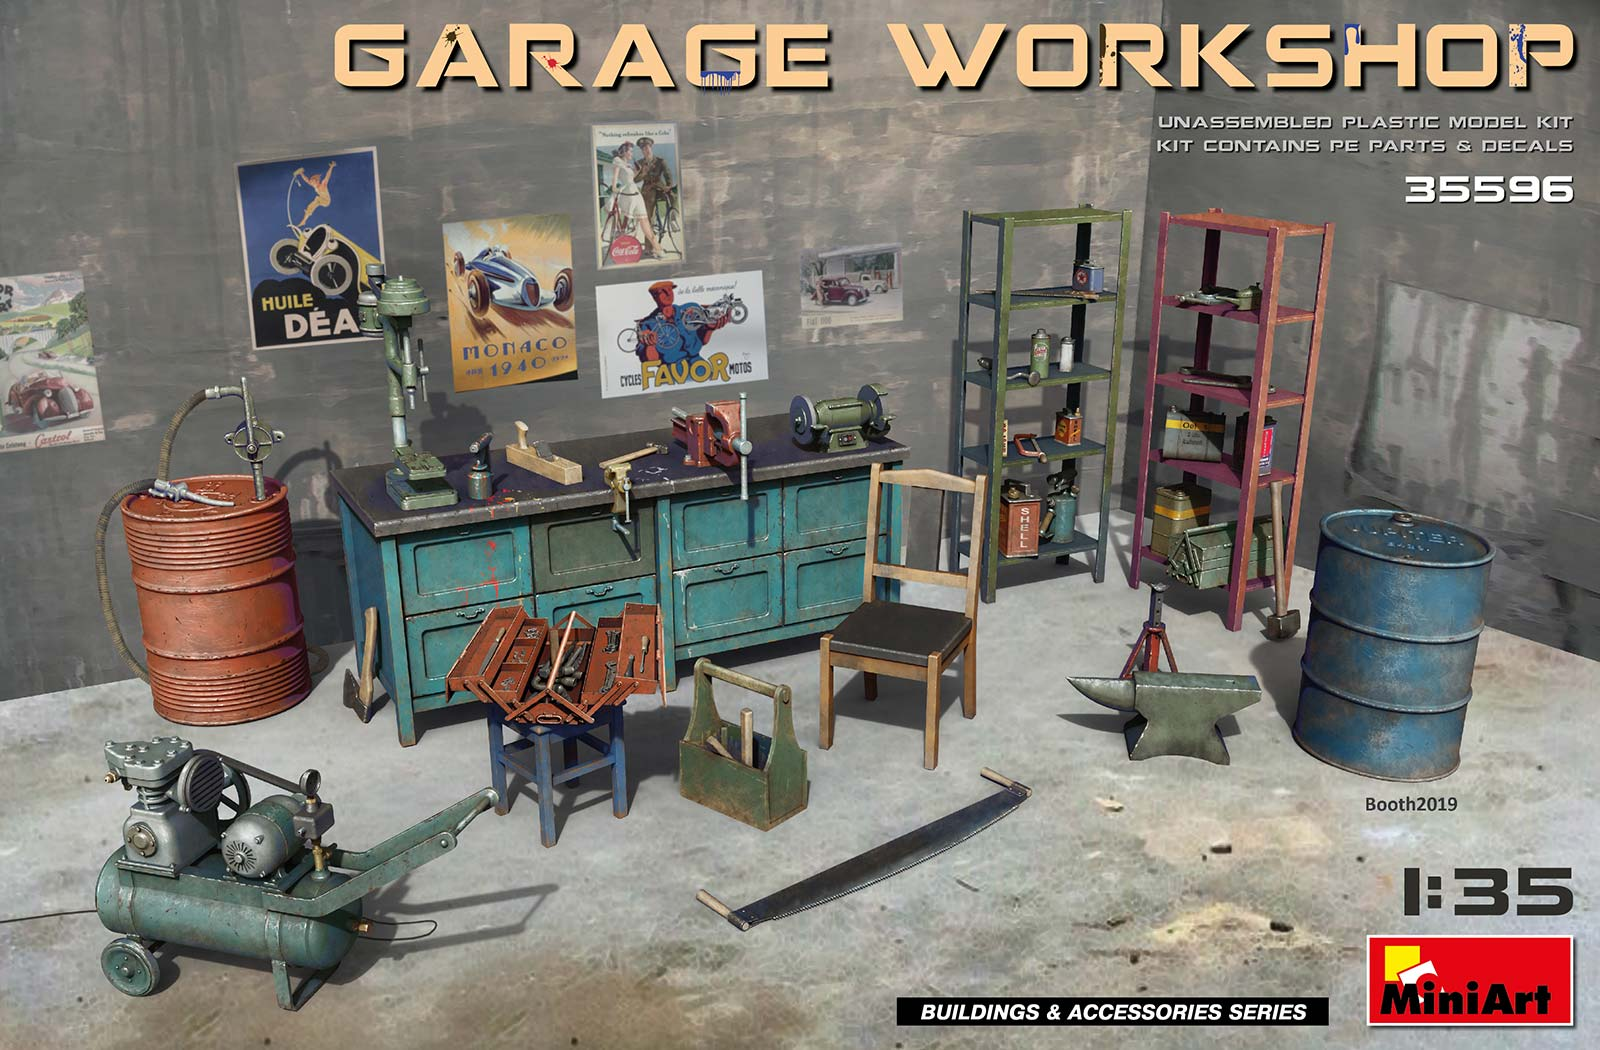 Miniart Garage Workshop (1/35)